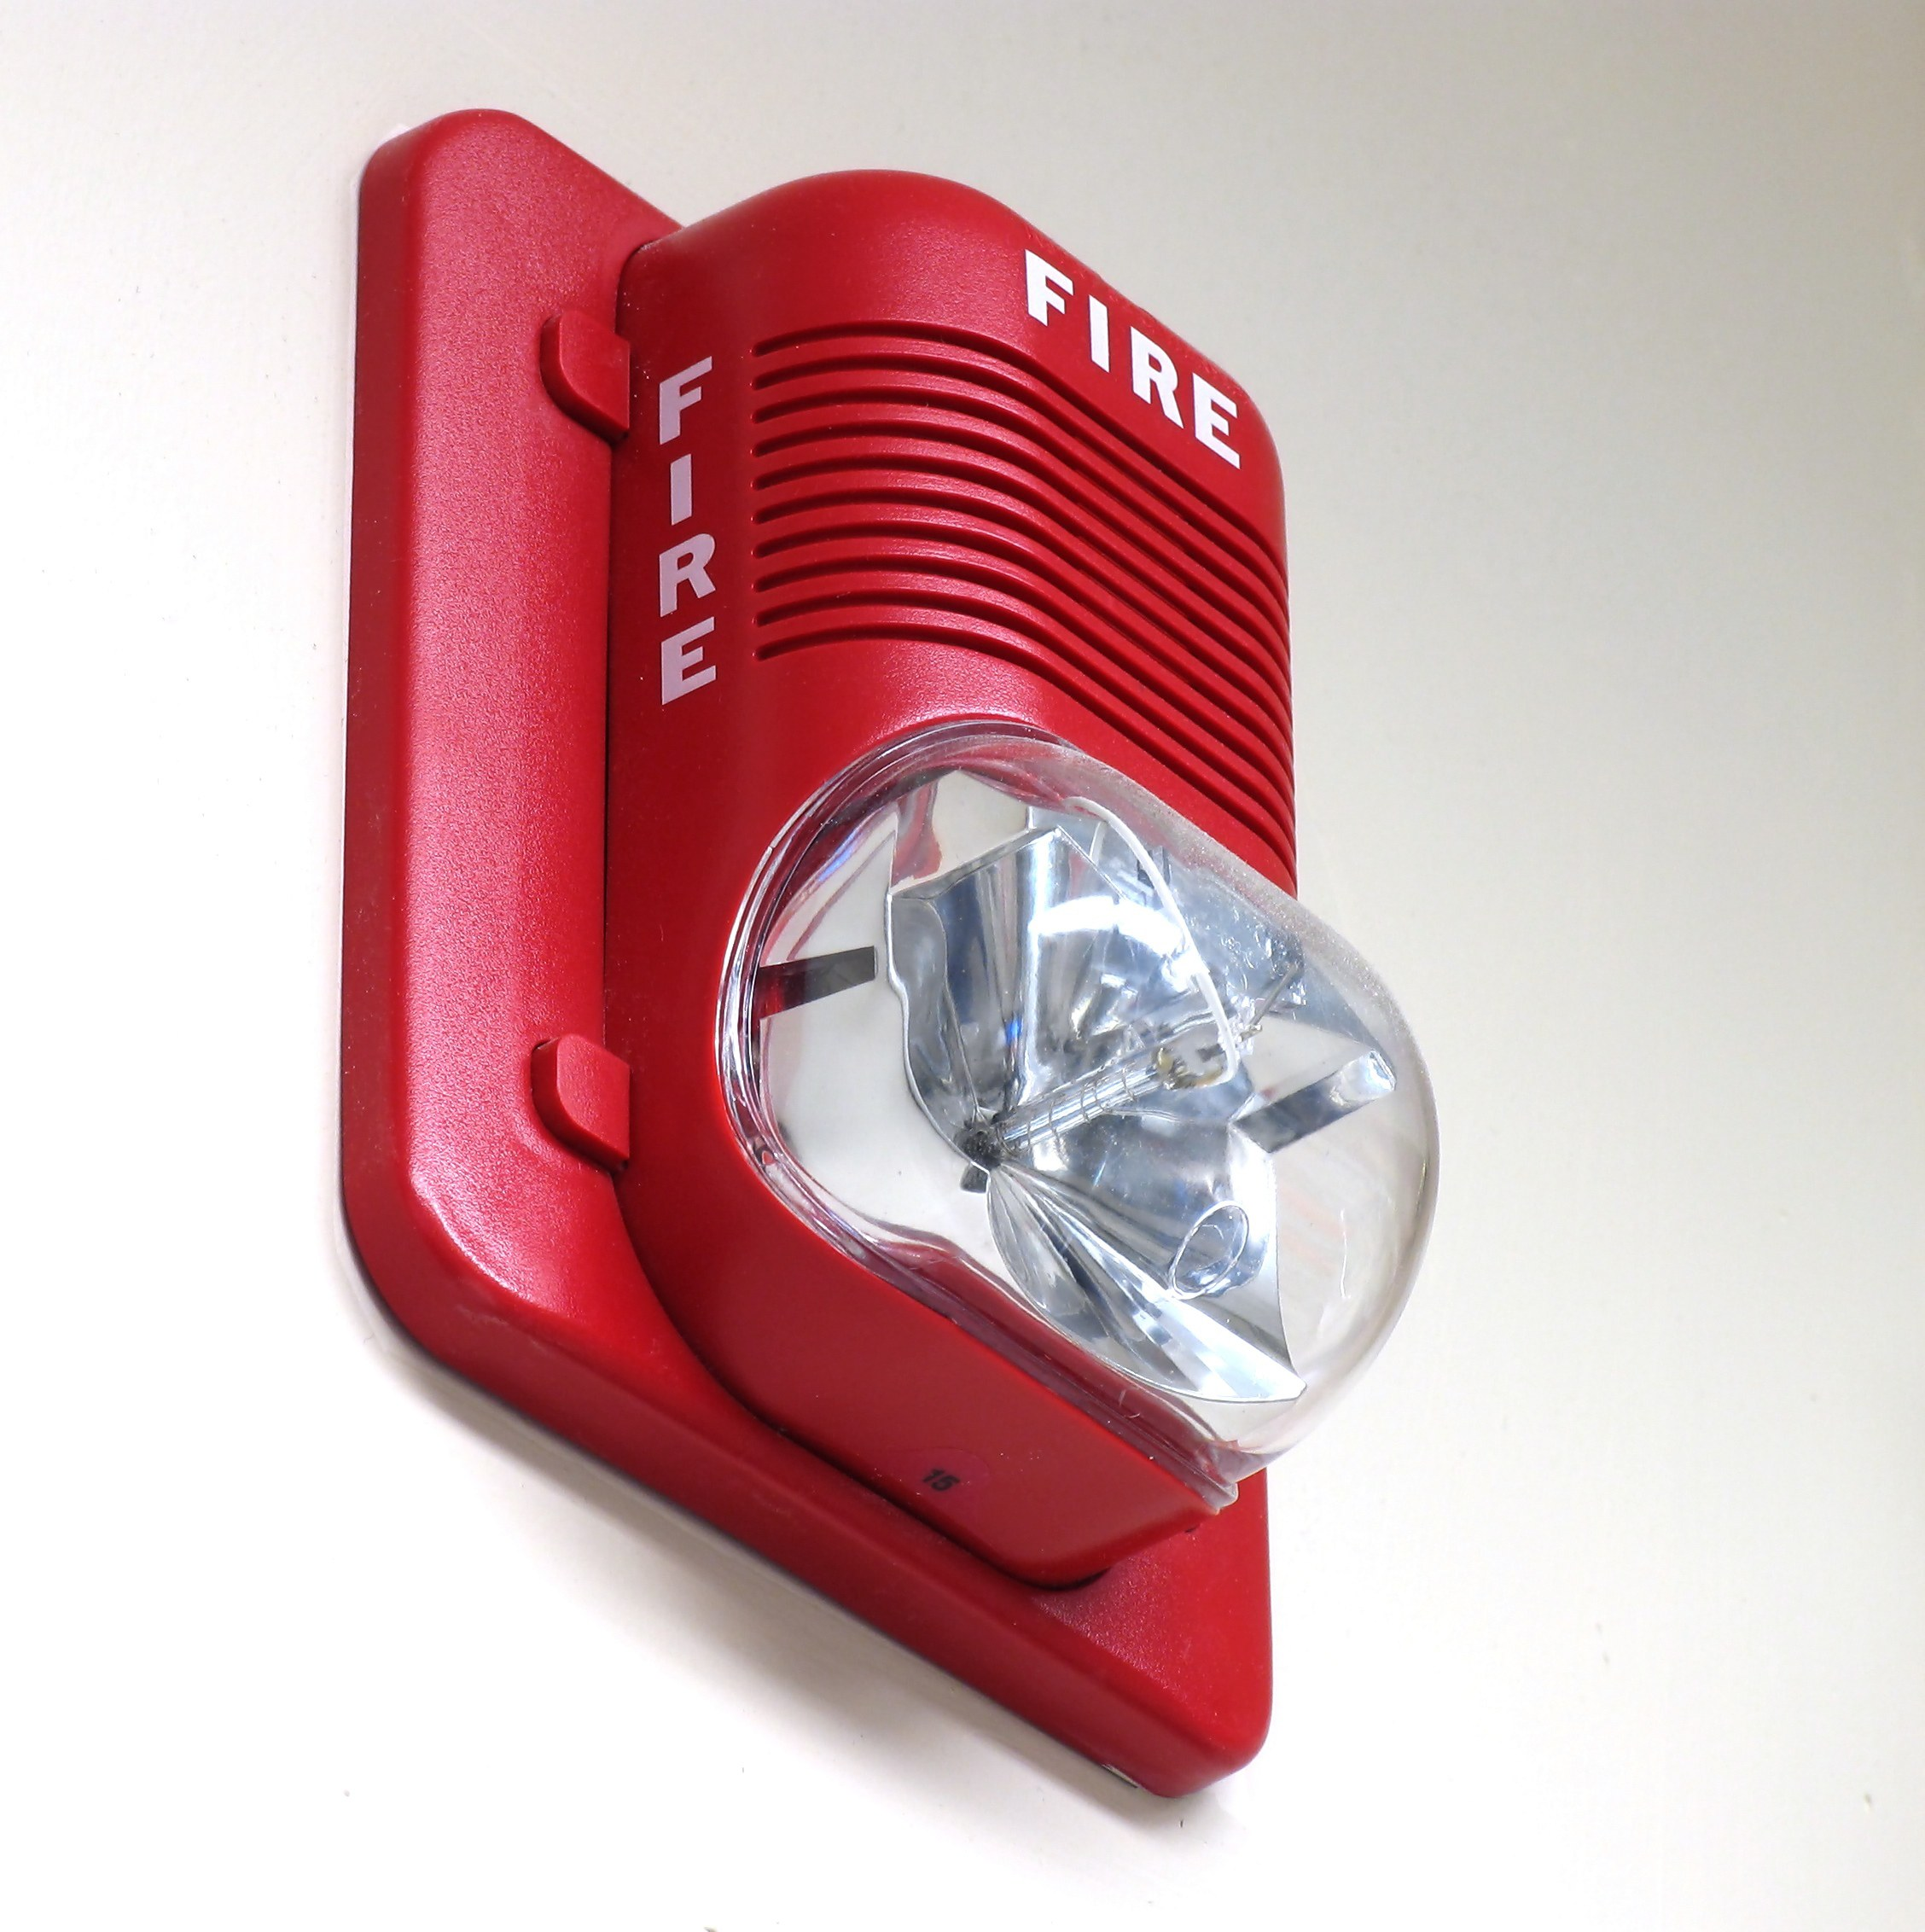 how to stop my fire alarm from beeping